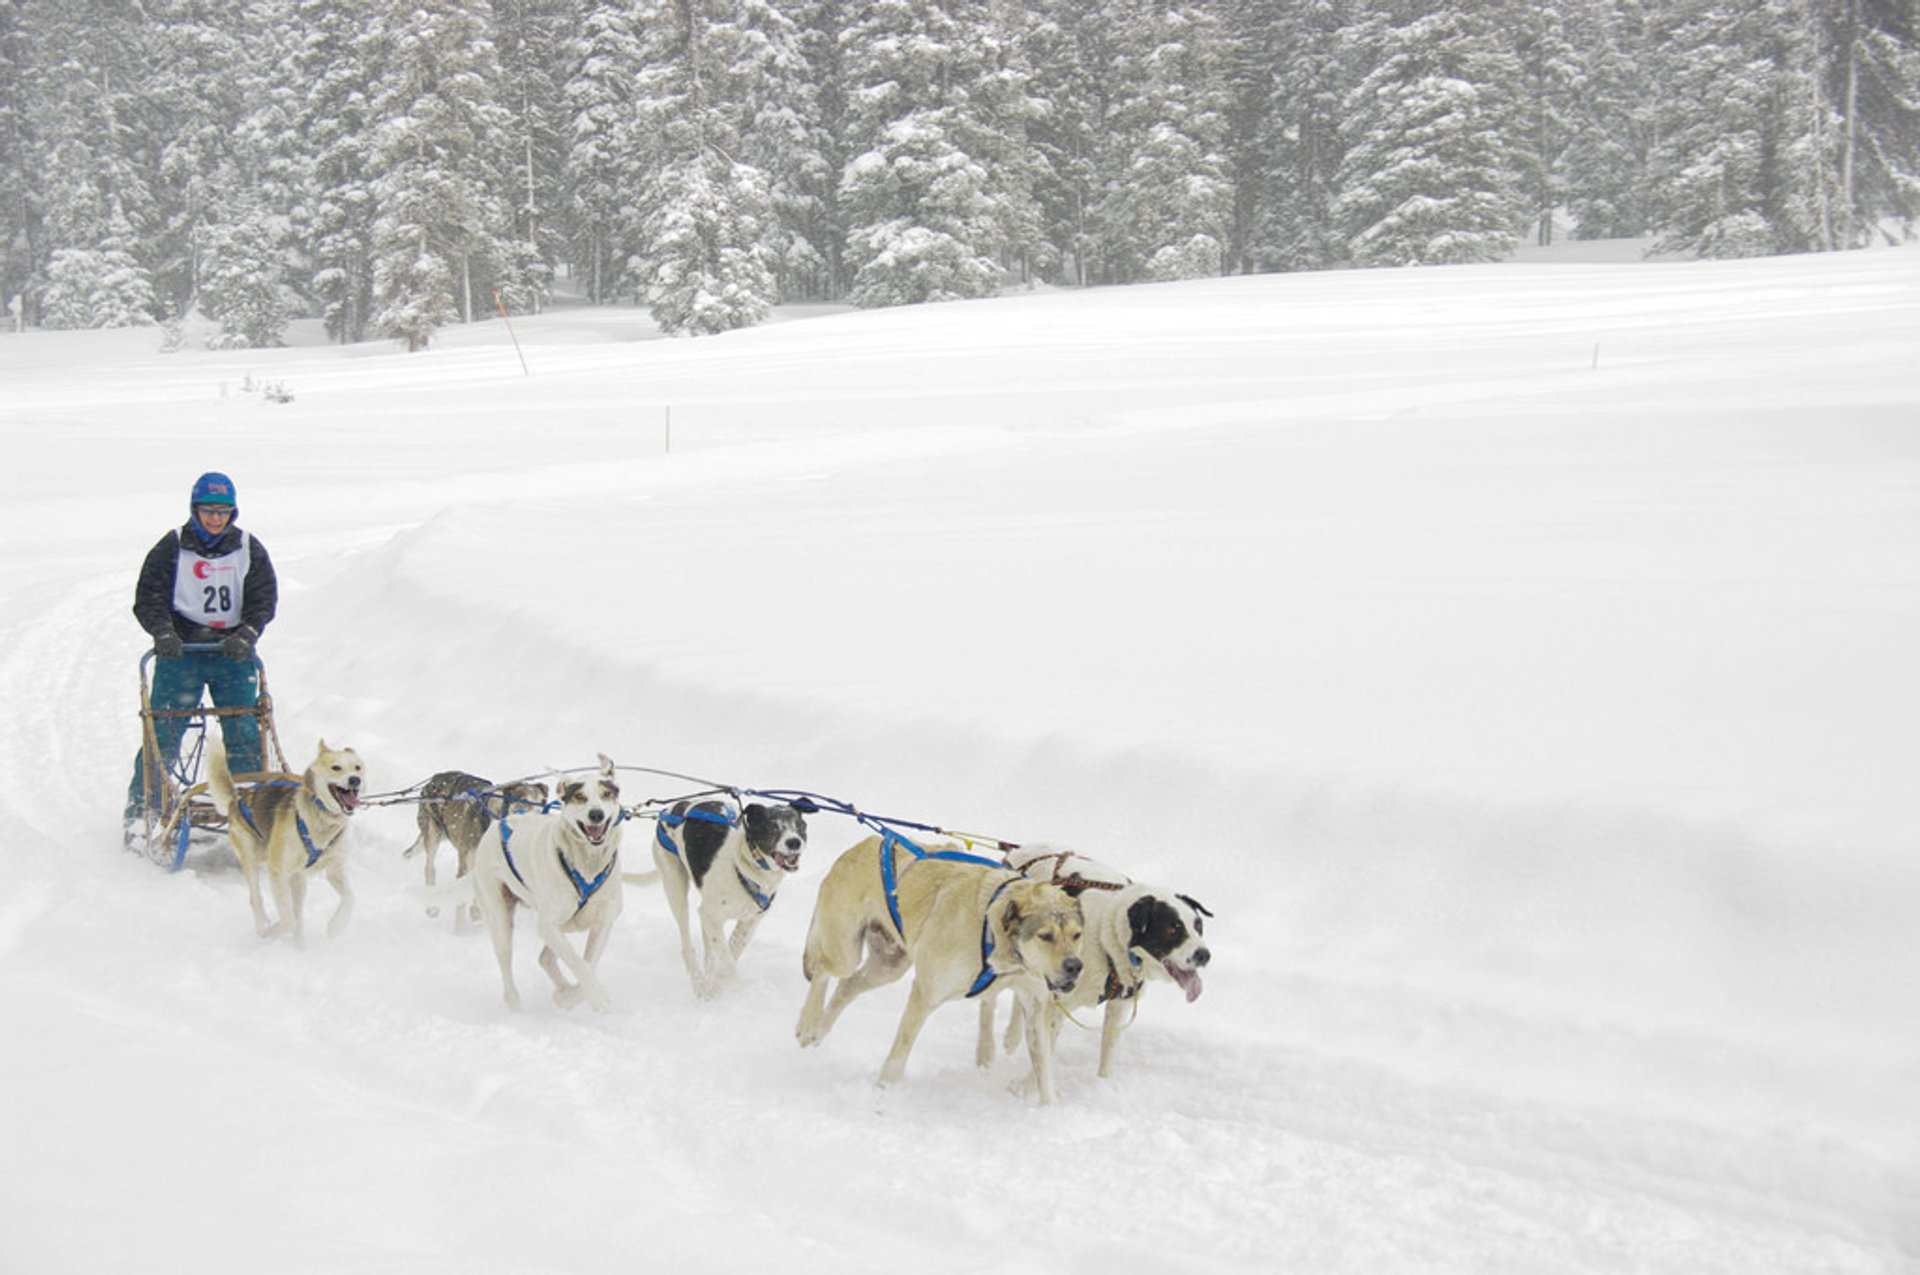 Dog Sledding & Snow Tubing in Colorado 2020 - Best Time